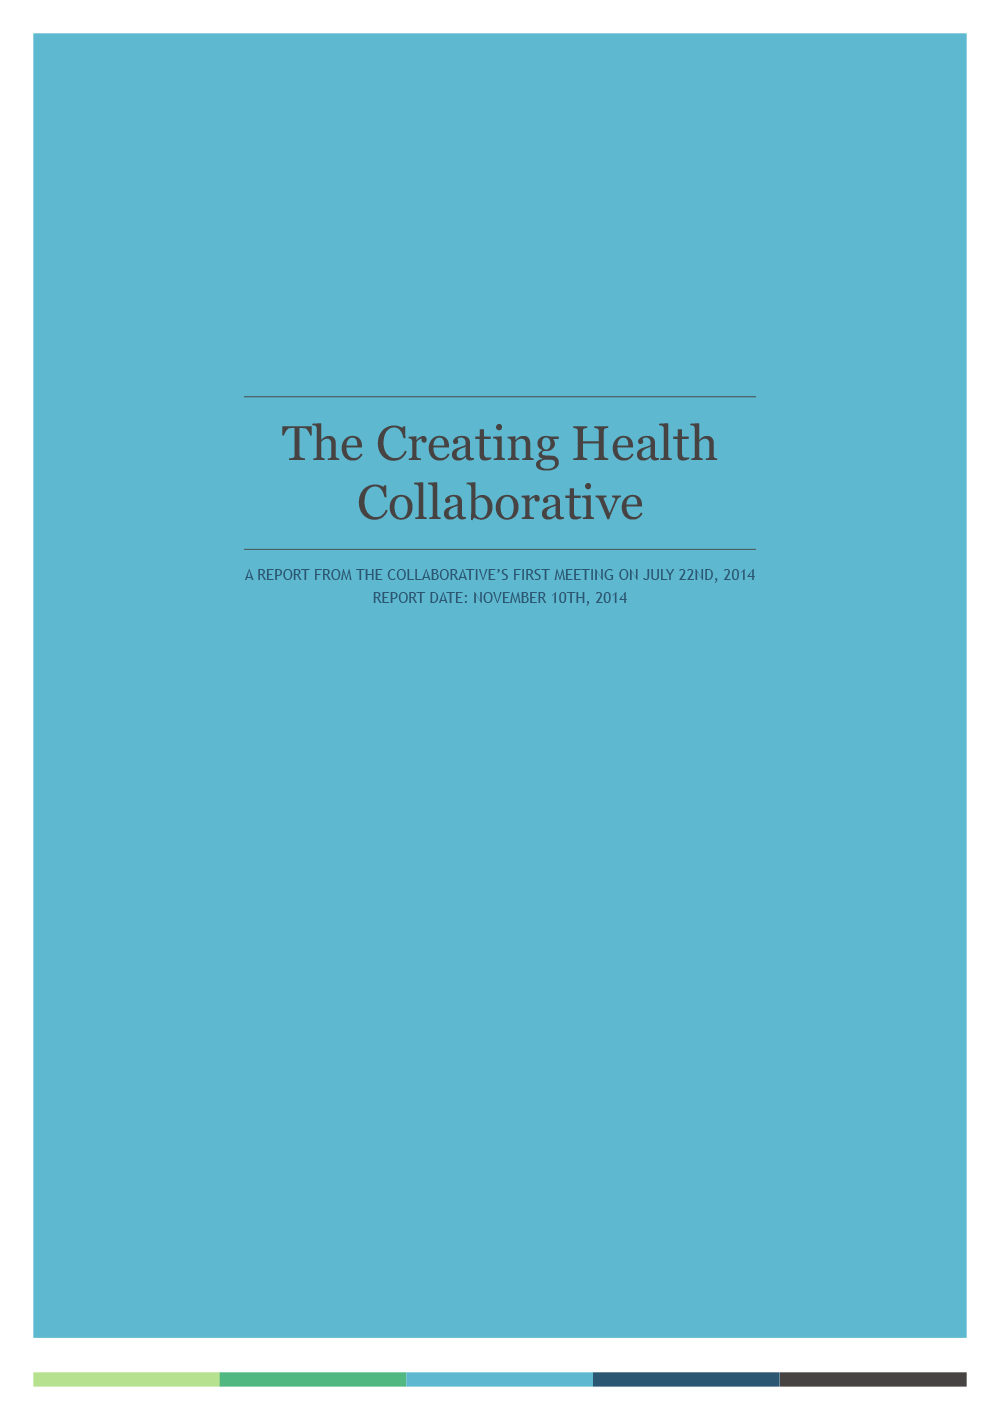 The Creating Health Collaborative